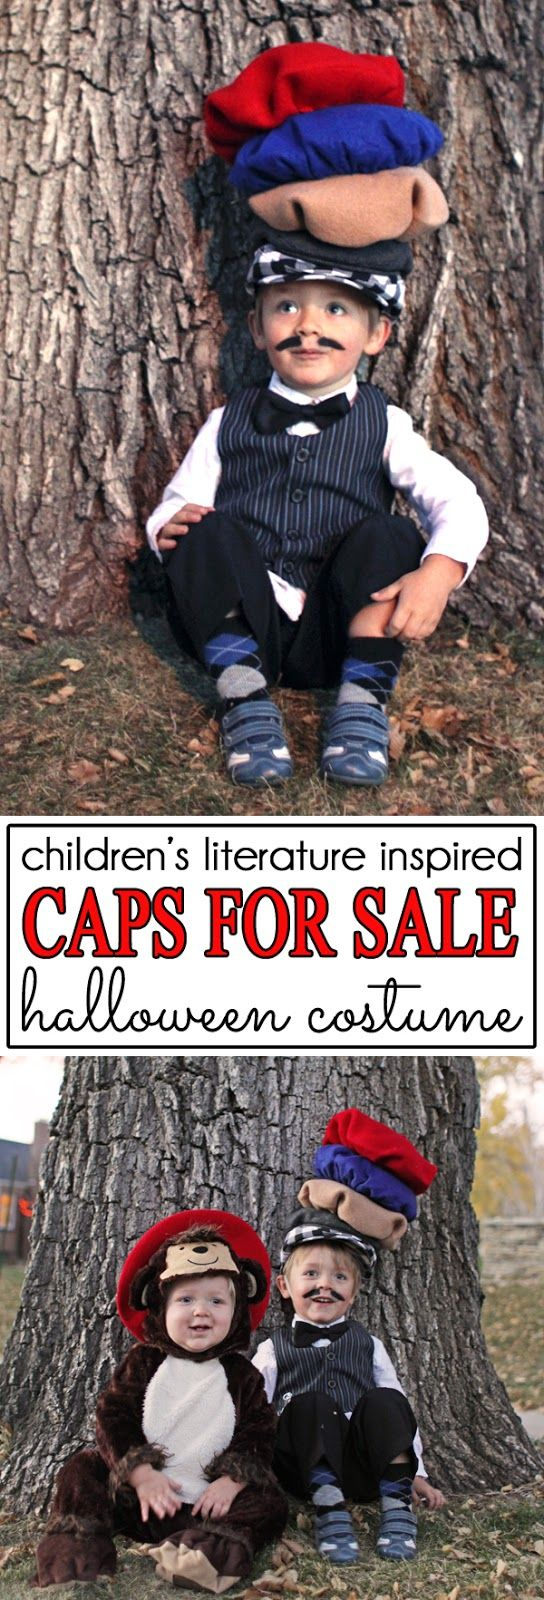 Caps! Caps for Sale! This children's literature inspired Halloween costume had big brother as the peddler who sells caps and carries them on top of his head and little brother as one of monkeys who steals the peddlers caps. The perfect Halloween costume for brothers who love this classic children's book.